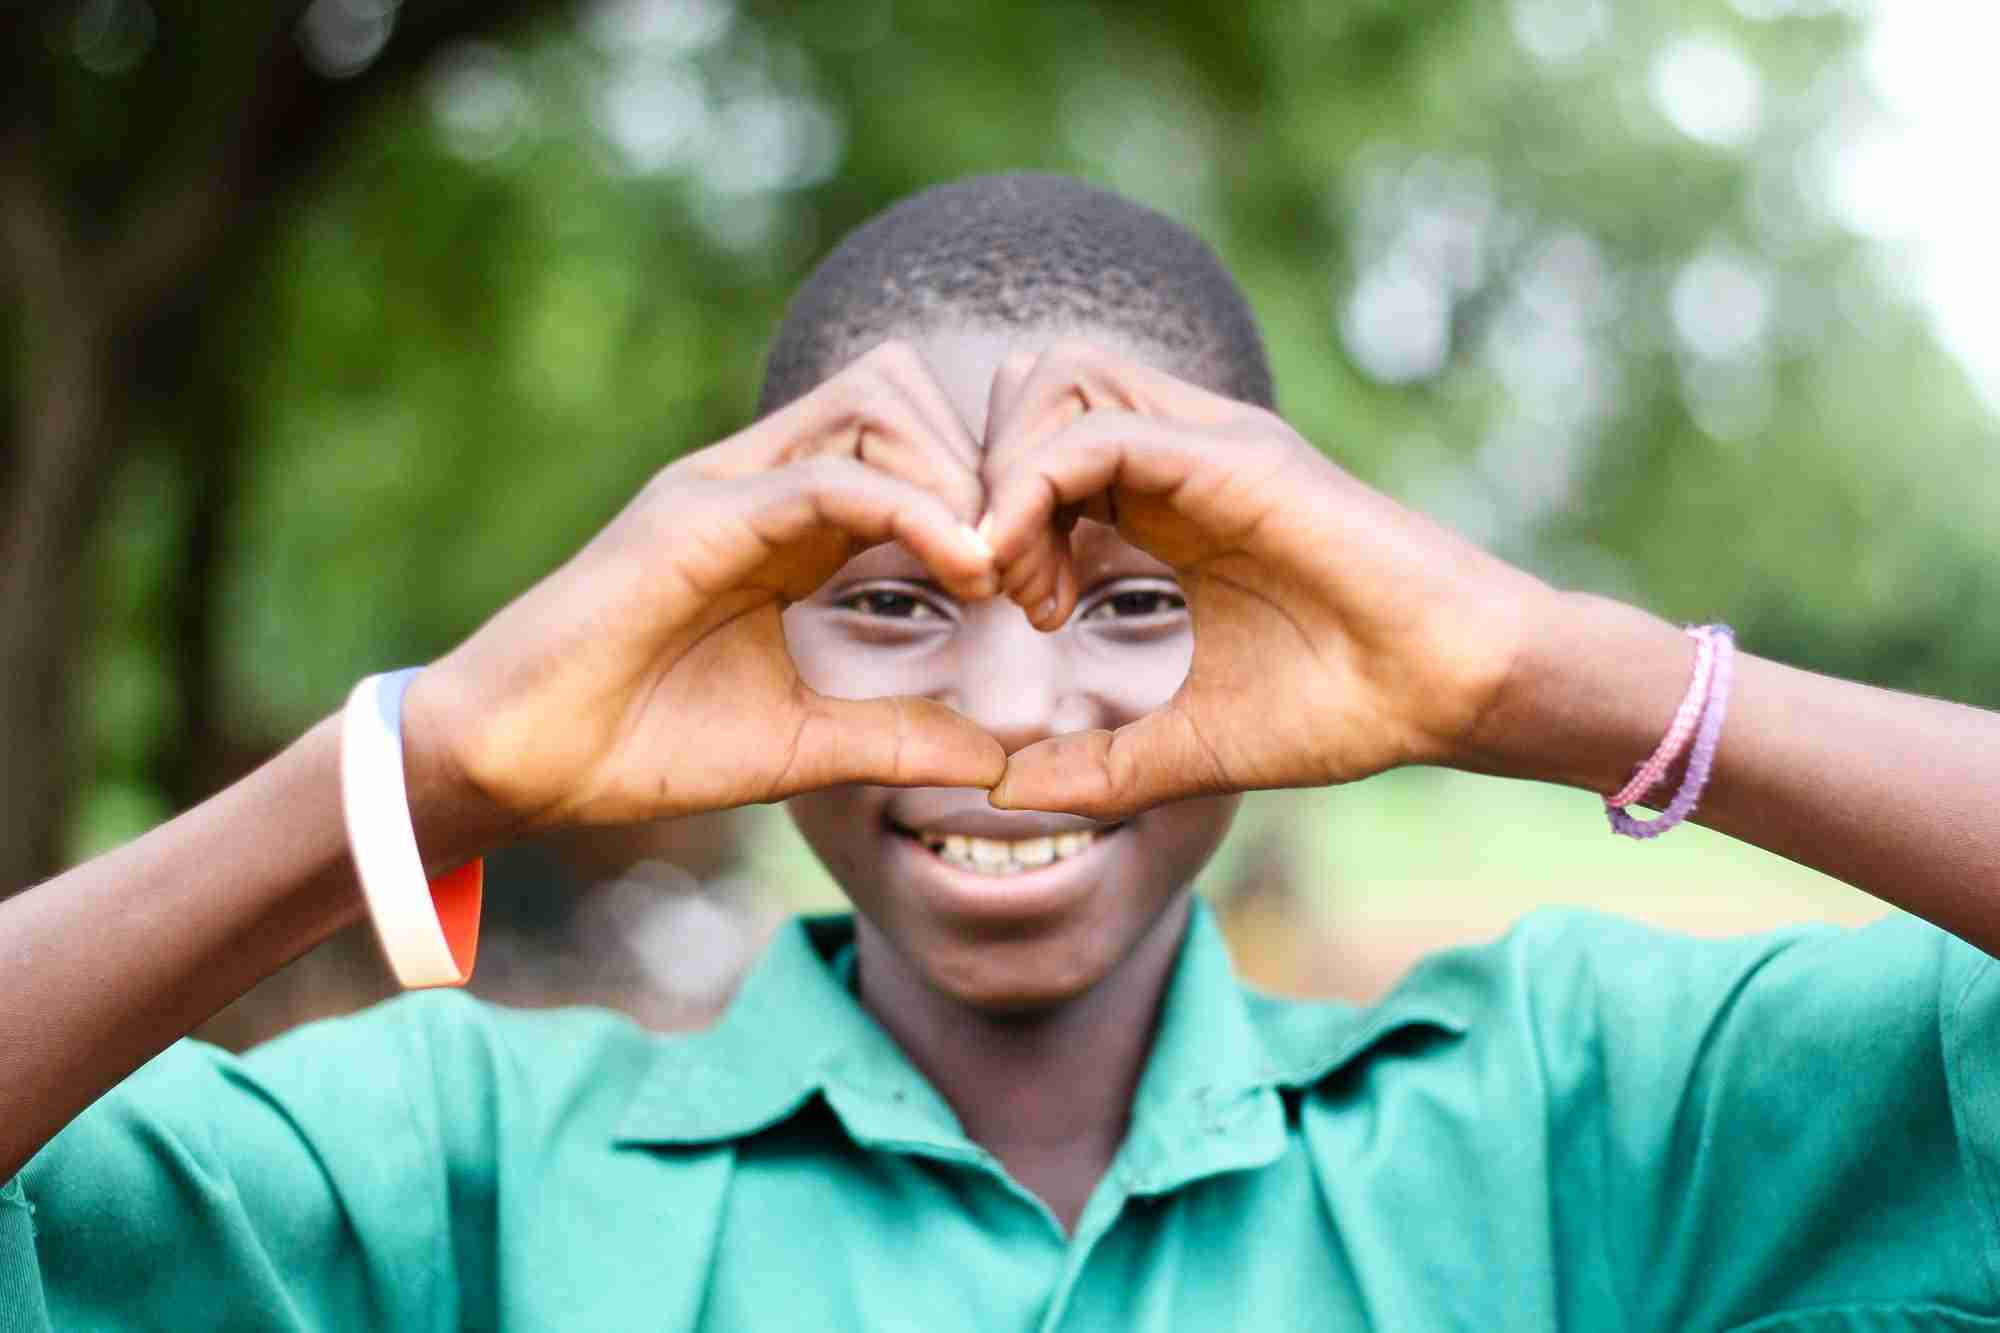 Boy forms a heart with his hands